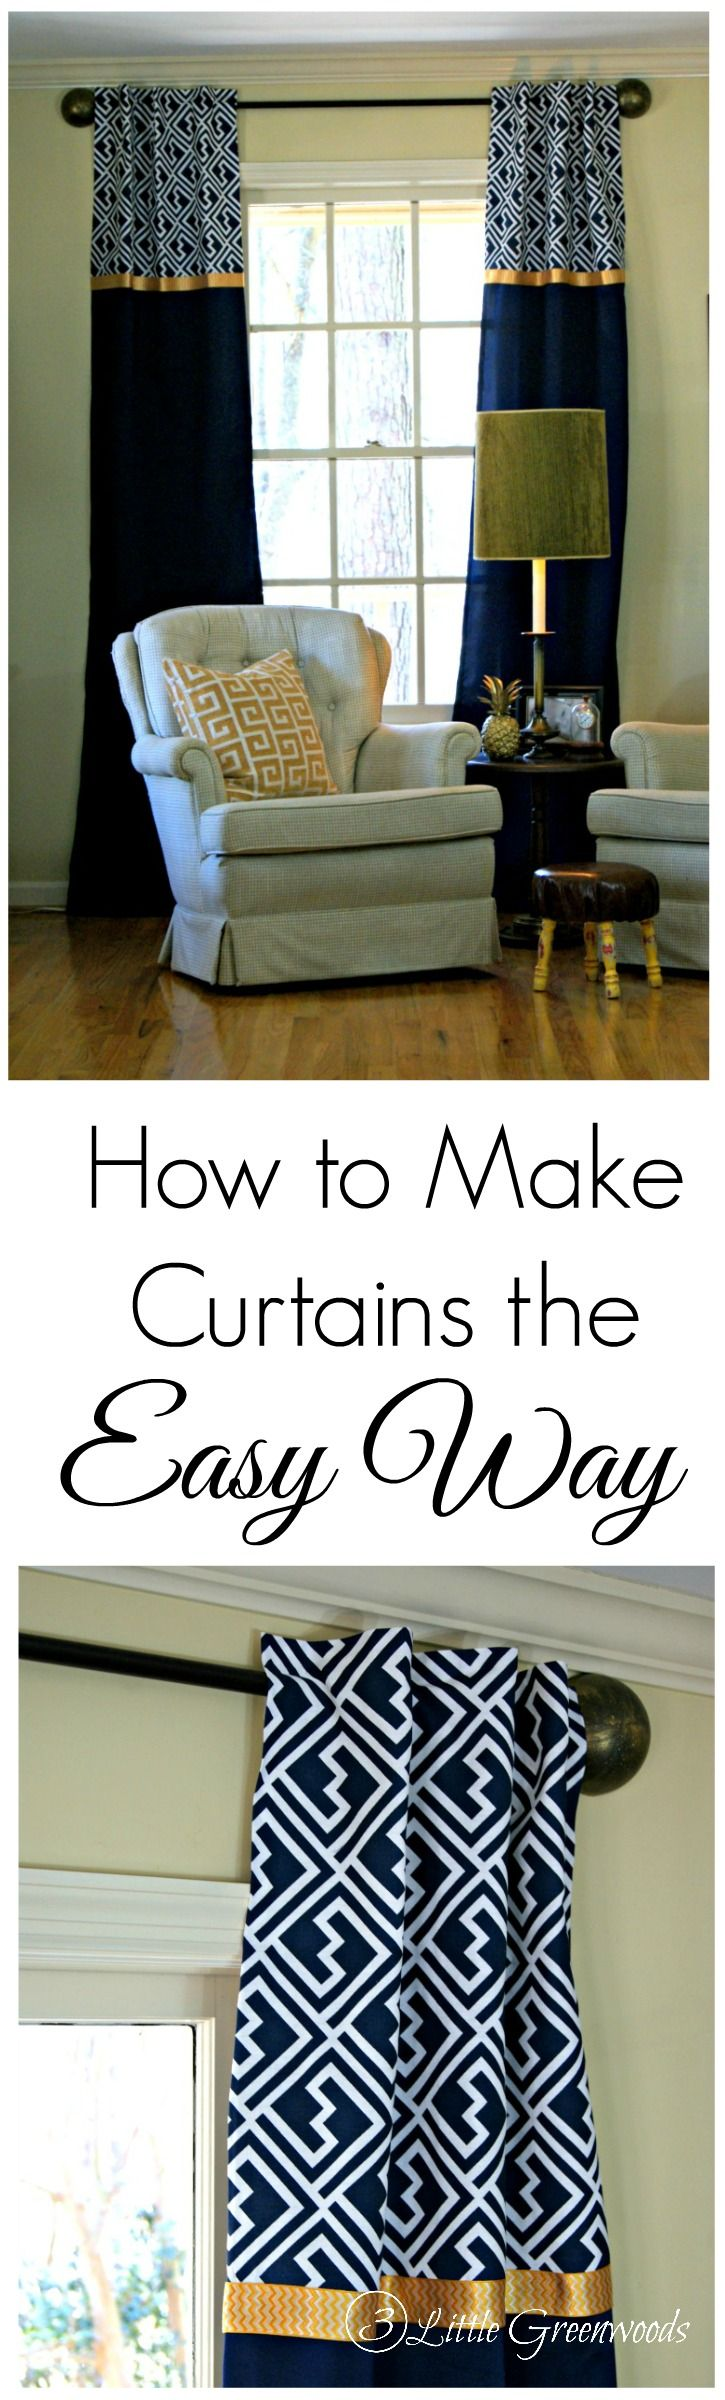 So i decided to make the curtains well semi home made - How To Make Curtains The Easy No Sew Way How To Make Curtainsdiy